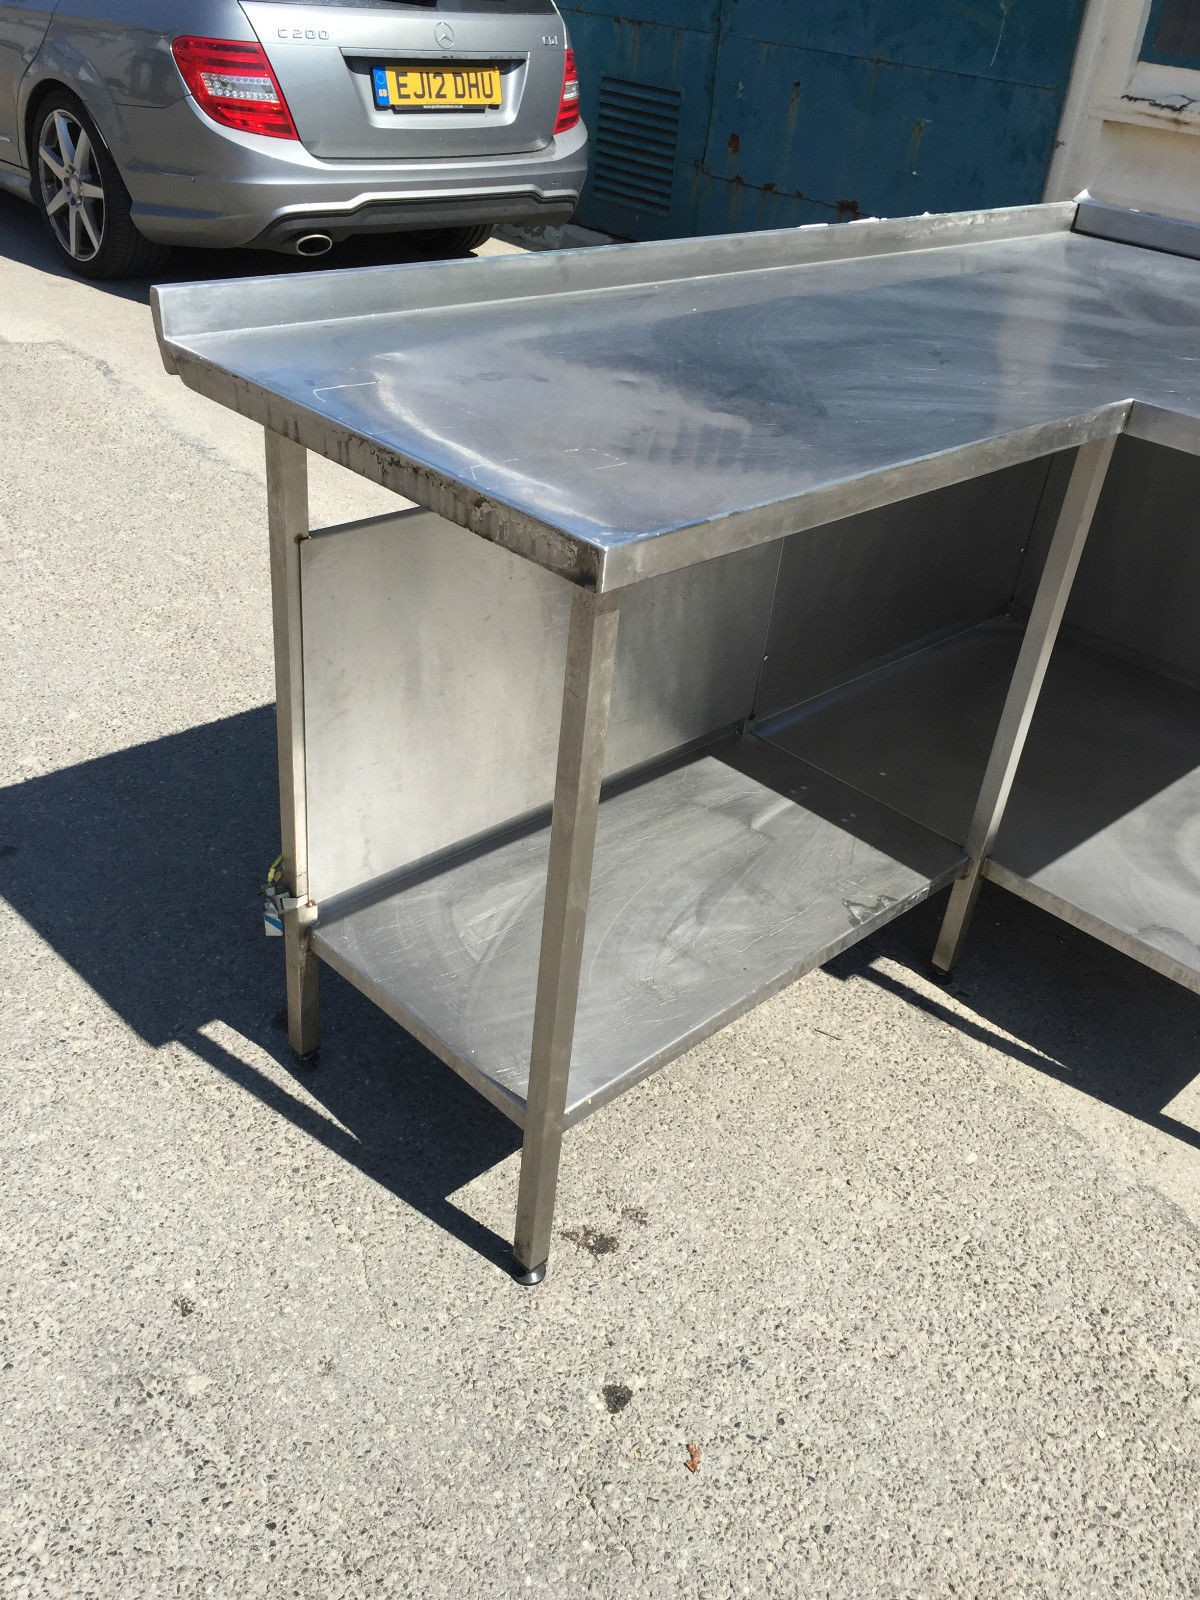 Secondhand Catering Equipment Stainless Steel Tables Corners And Odd Shapes Commercial